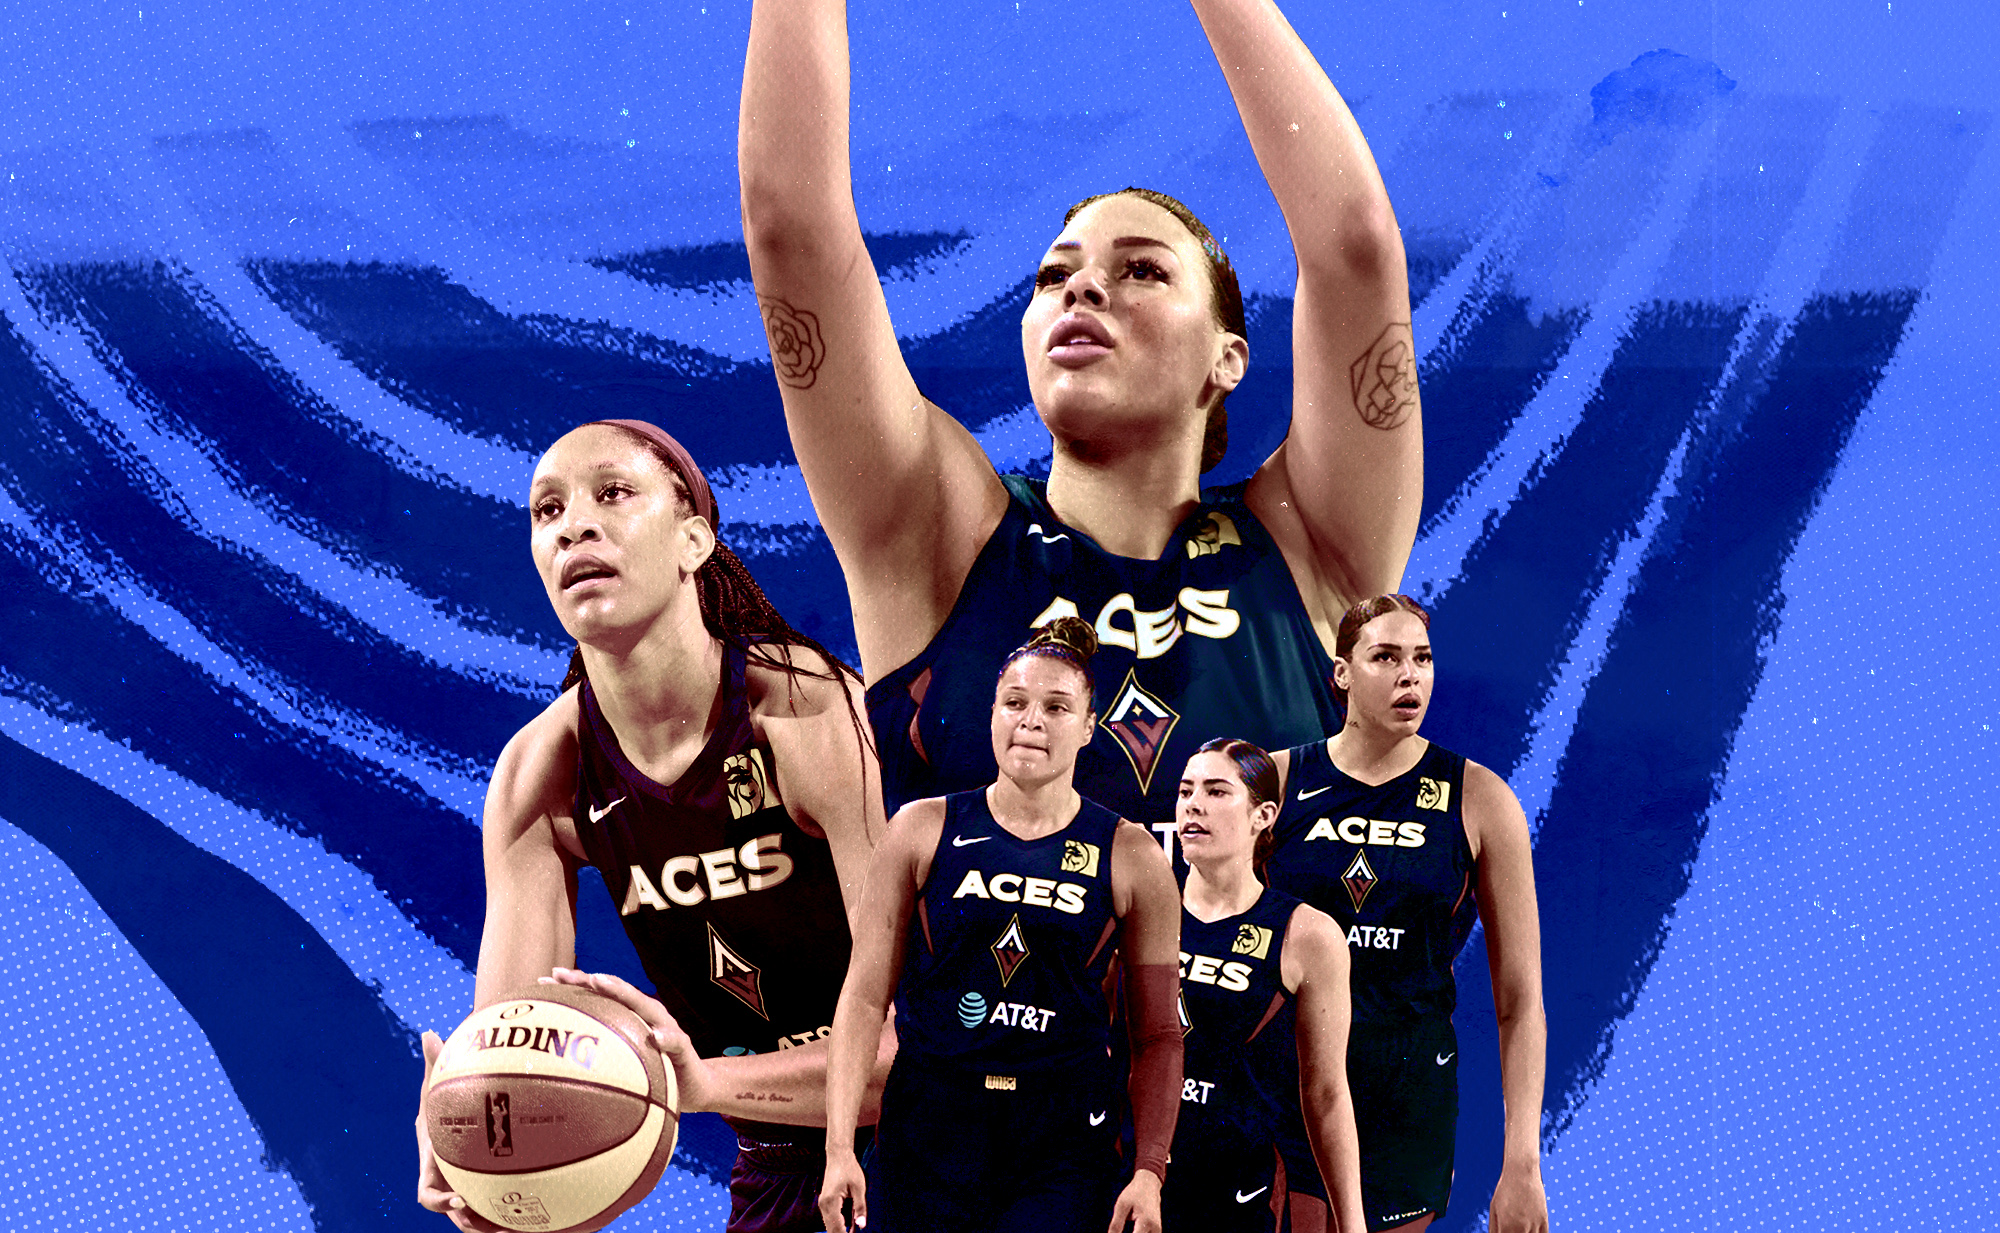 A collage of Las Vegas Aces players: A'ja Wilson, Kayla McBride, Kelsey Plum, and Liz Cambage in front row; Liz Cambage in background.